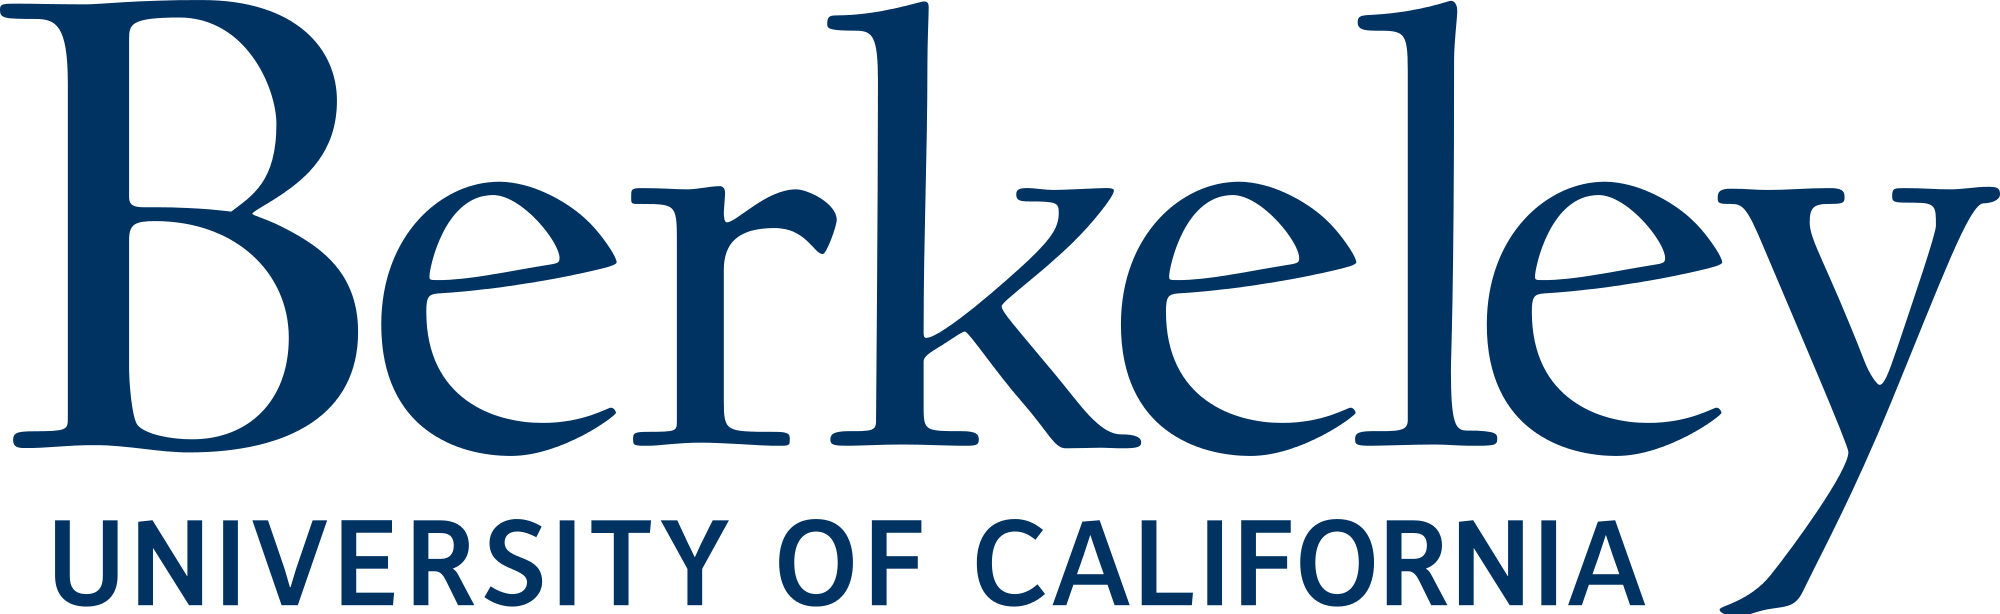 UC Berkeley Seal - Labeled for Reuse.png